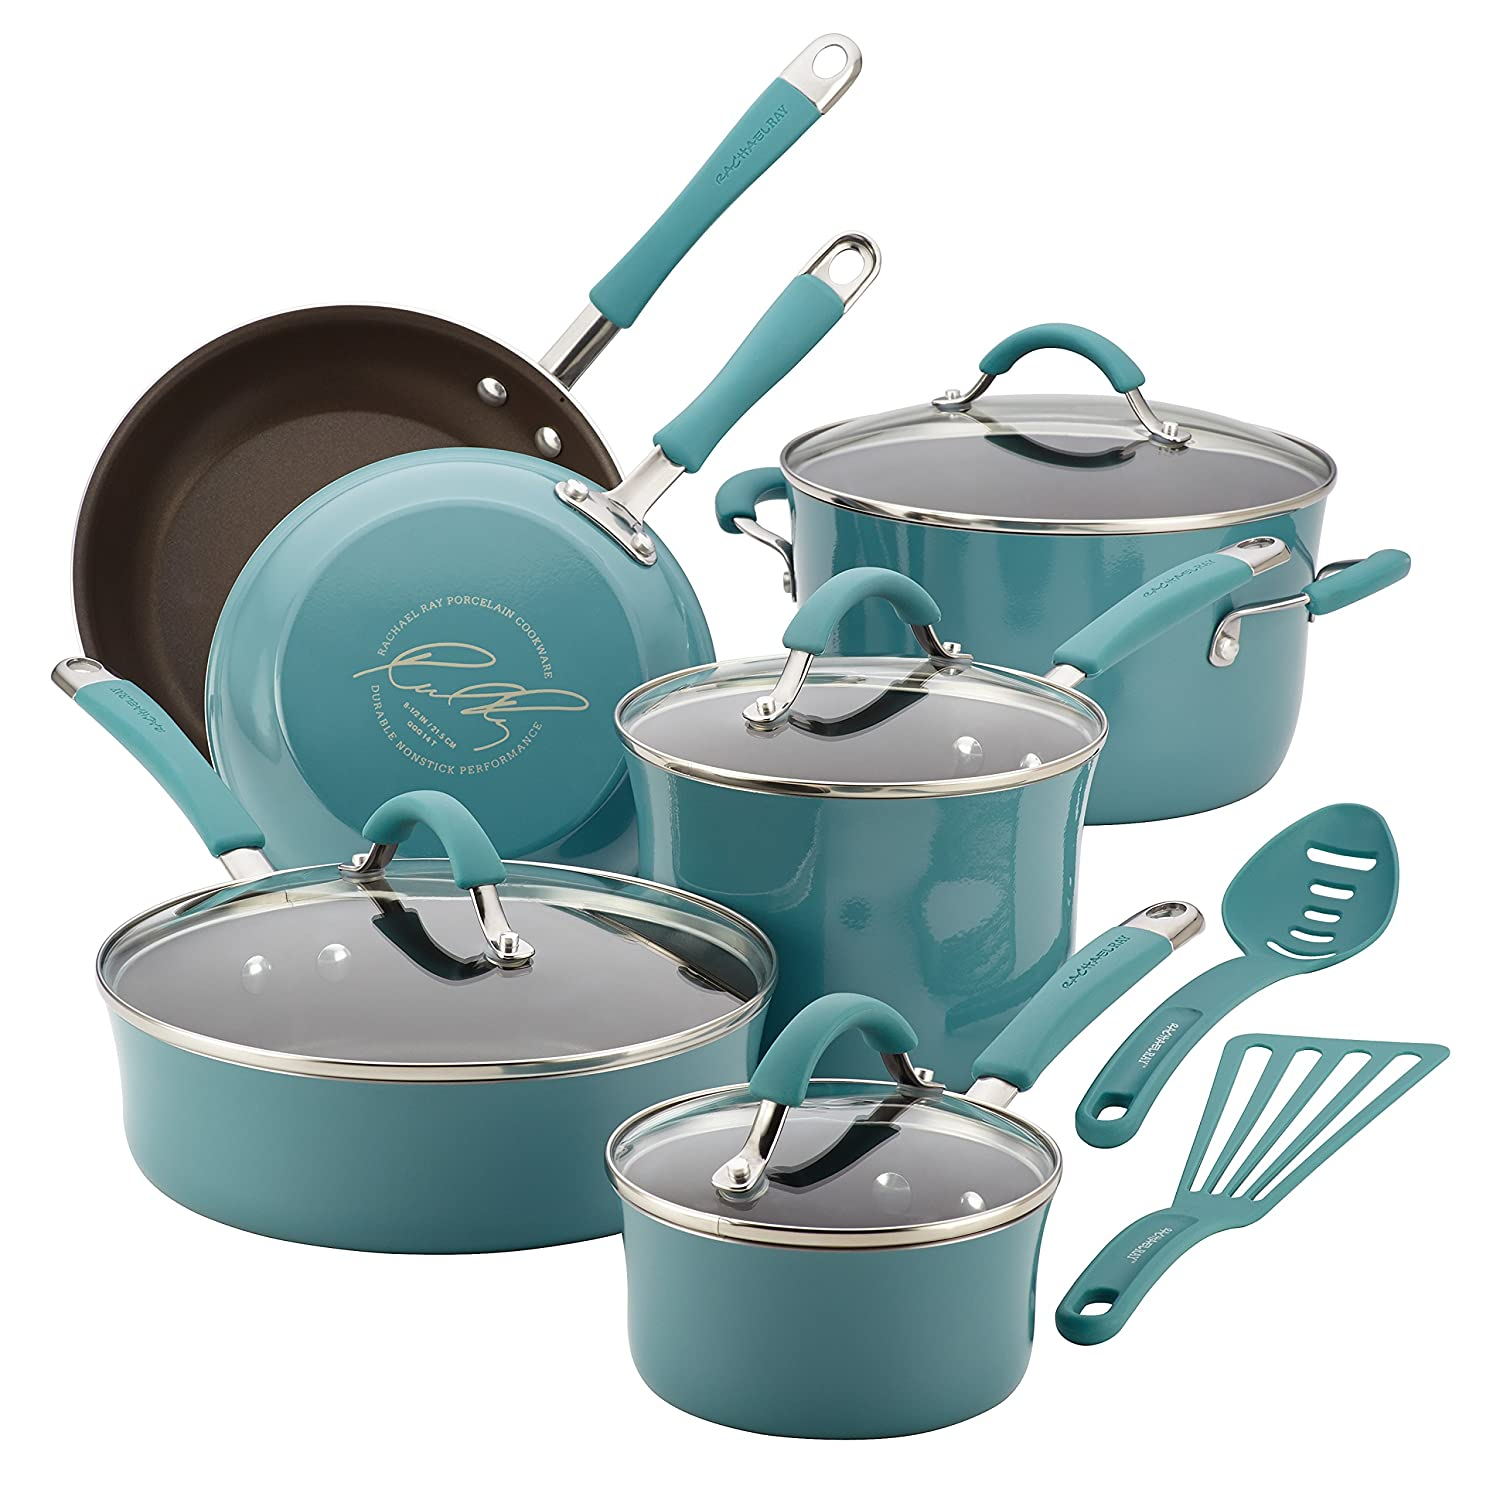 Rachael Ray 16344 12-Piece Aluminum Cookware Set